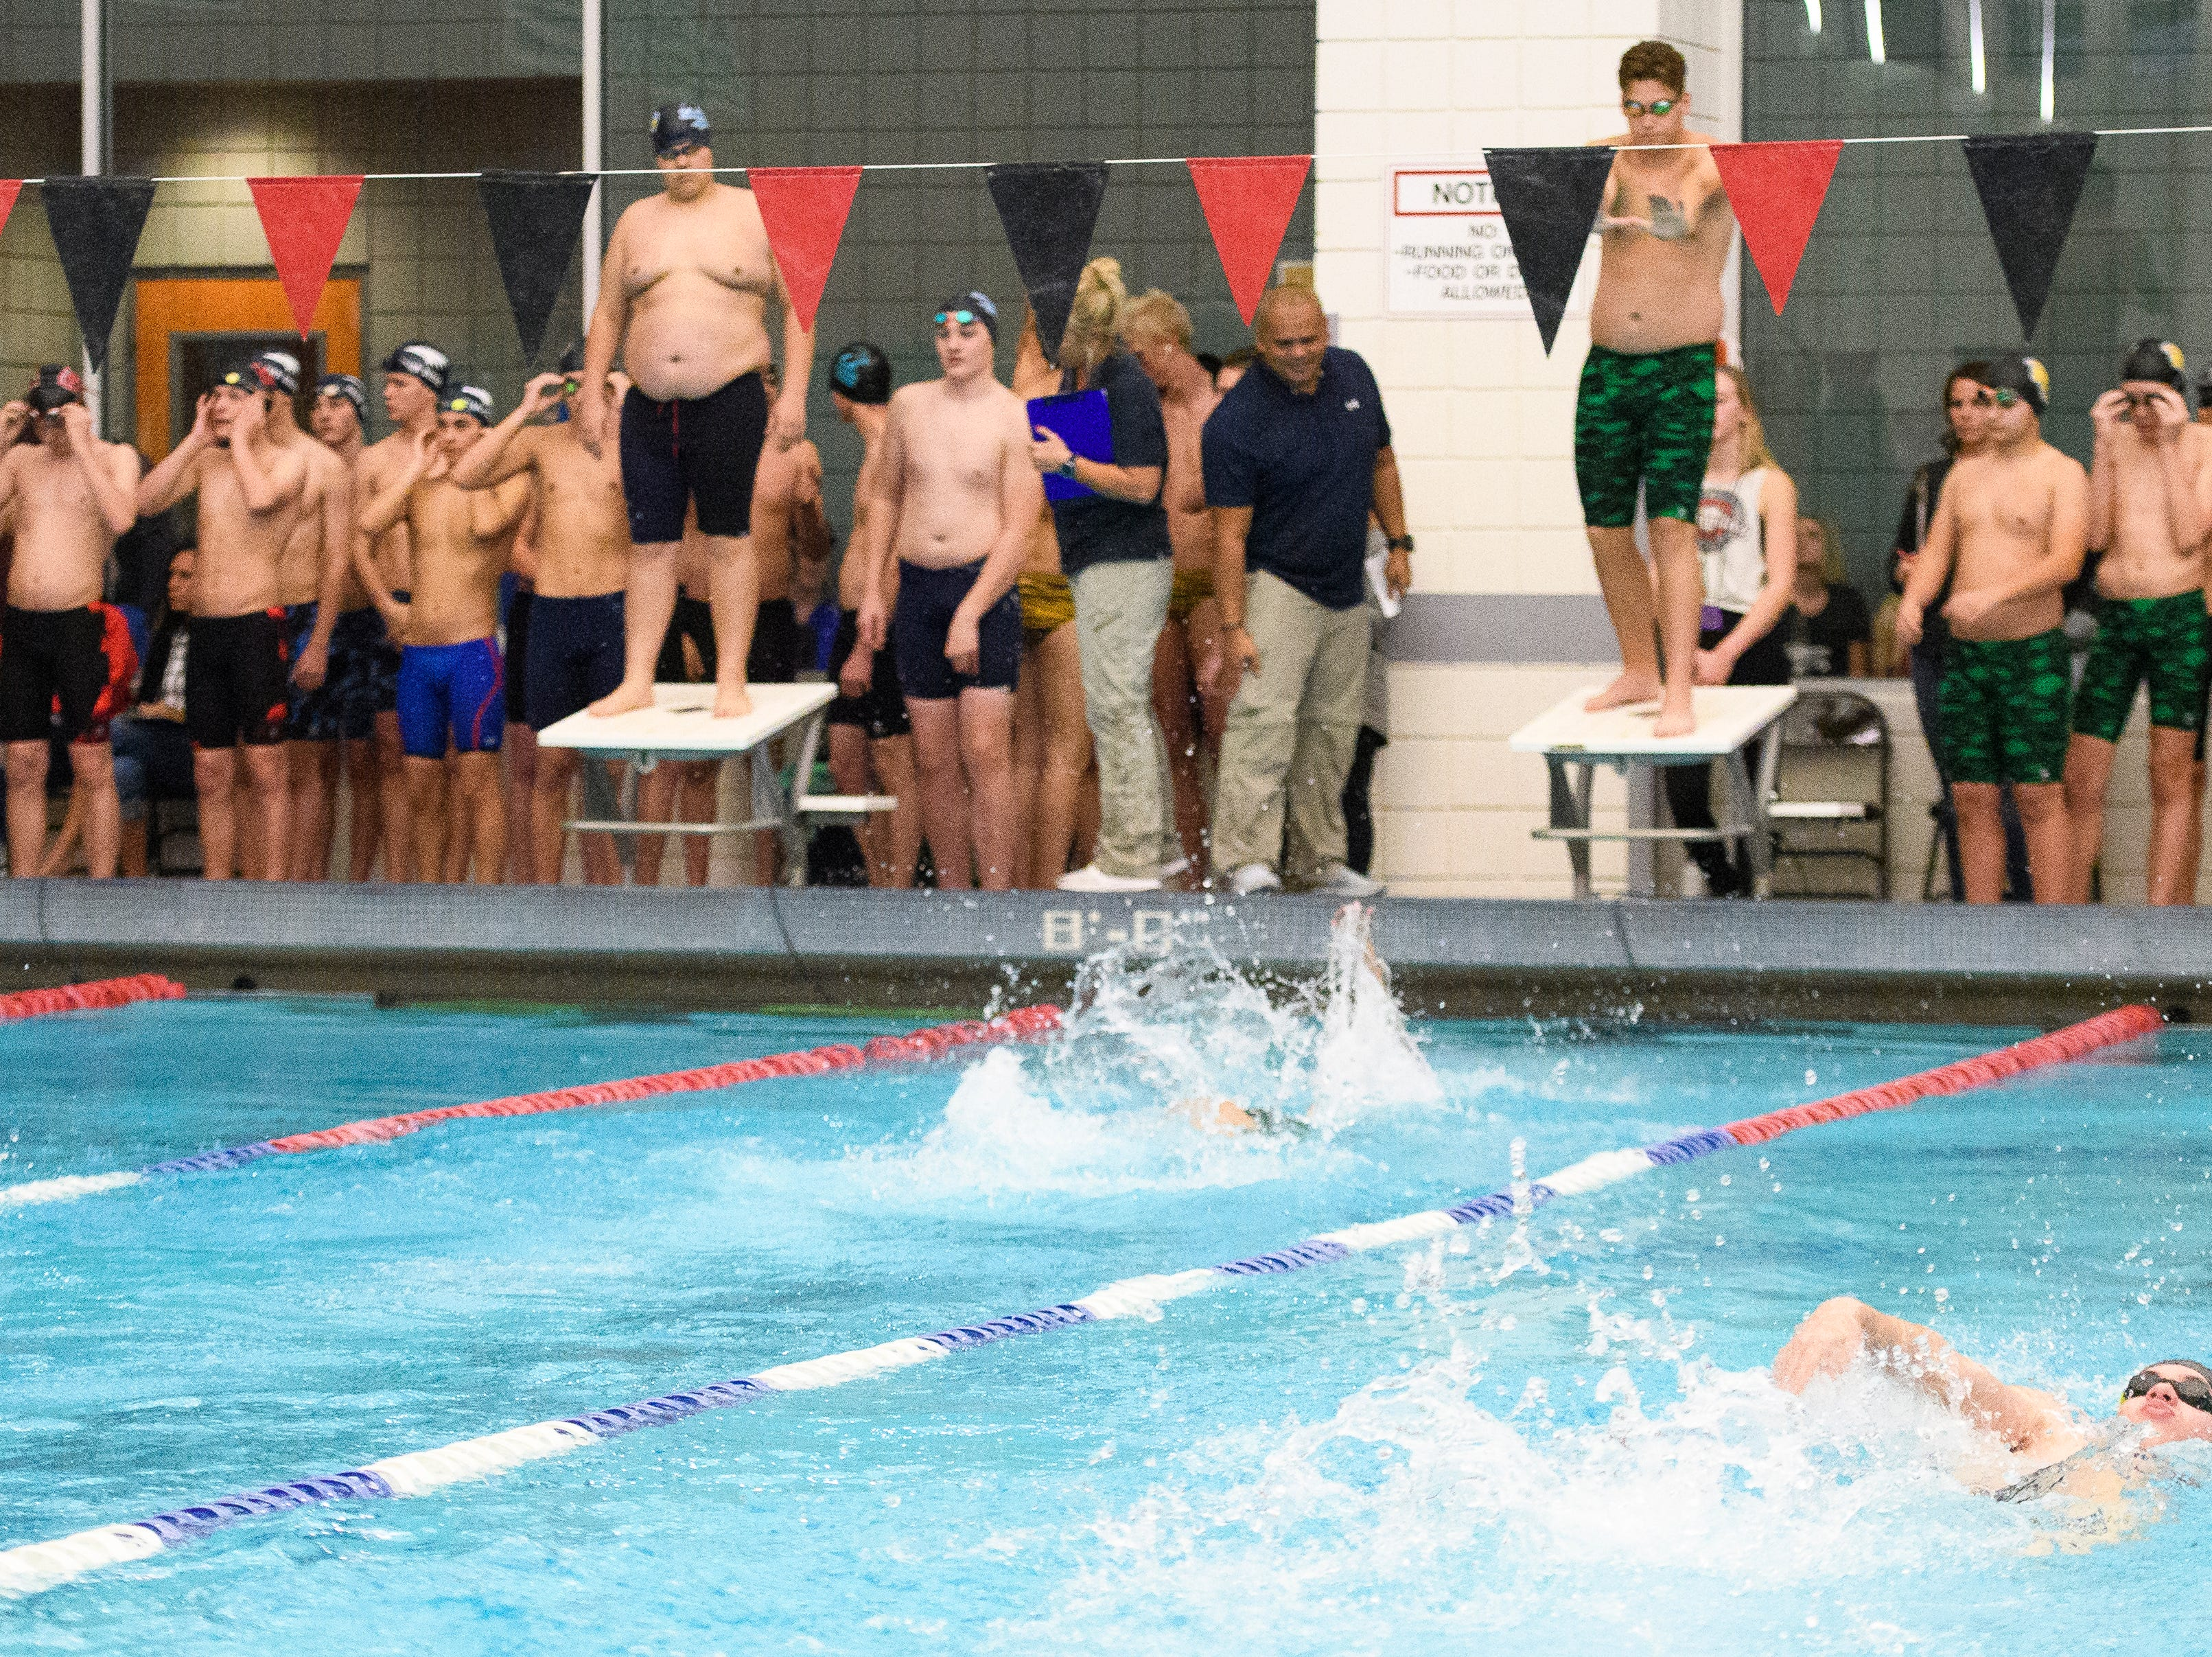 Swimmers compete during the Canyon View Invitational at Southern Utah University Friday, November 30, 2018. Hundreds of swimmers from Region 9 competed at the event.